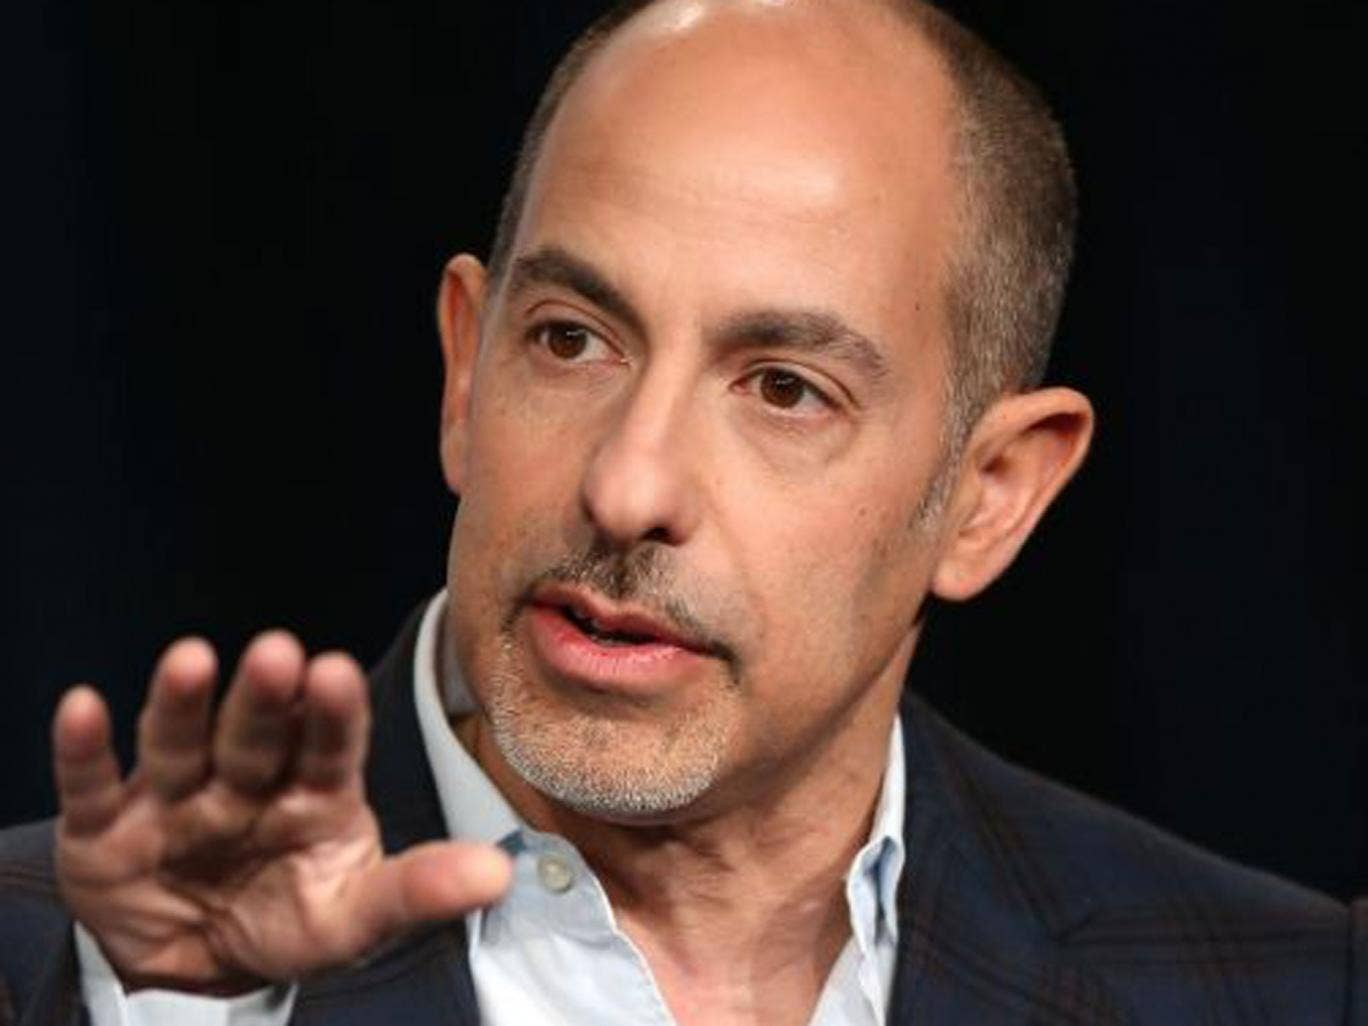 David Goyer has signed to direct an adaptation of Alexandre Dumas' The Count of Monte Cristo